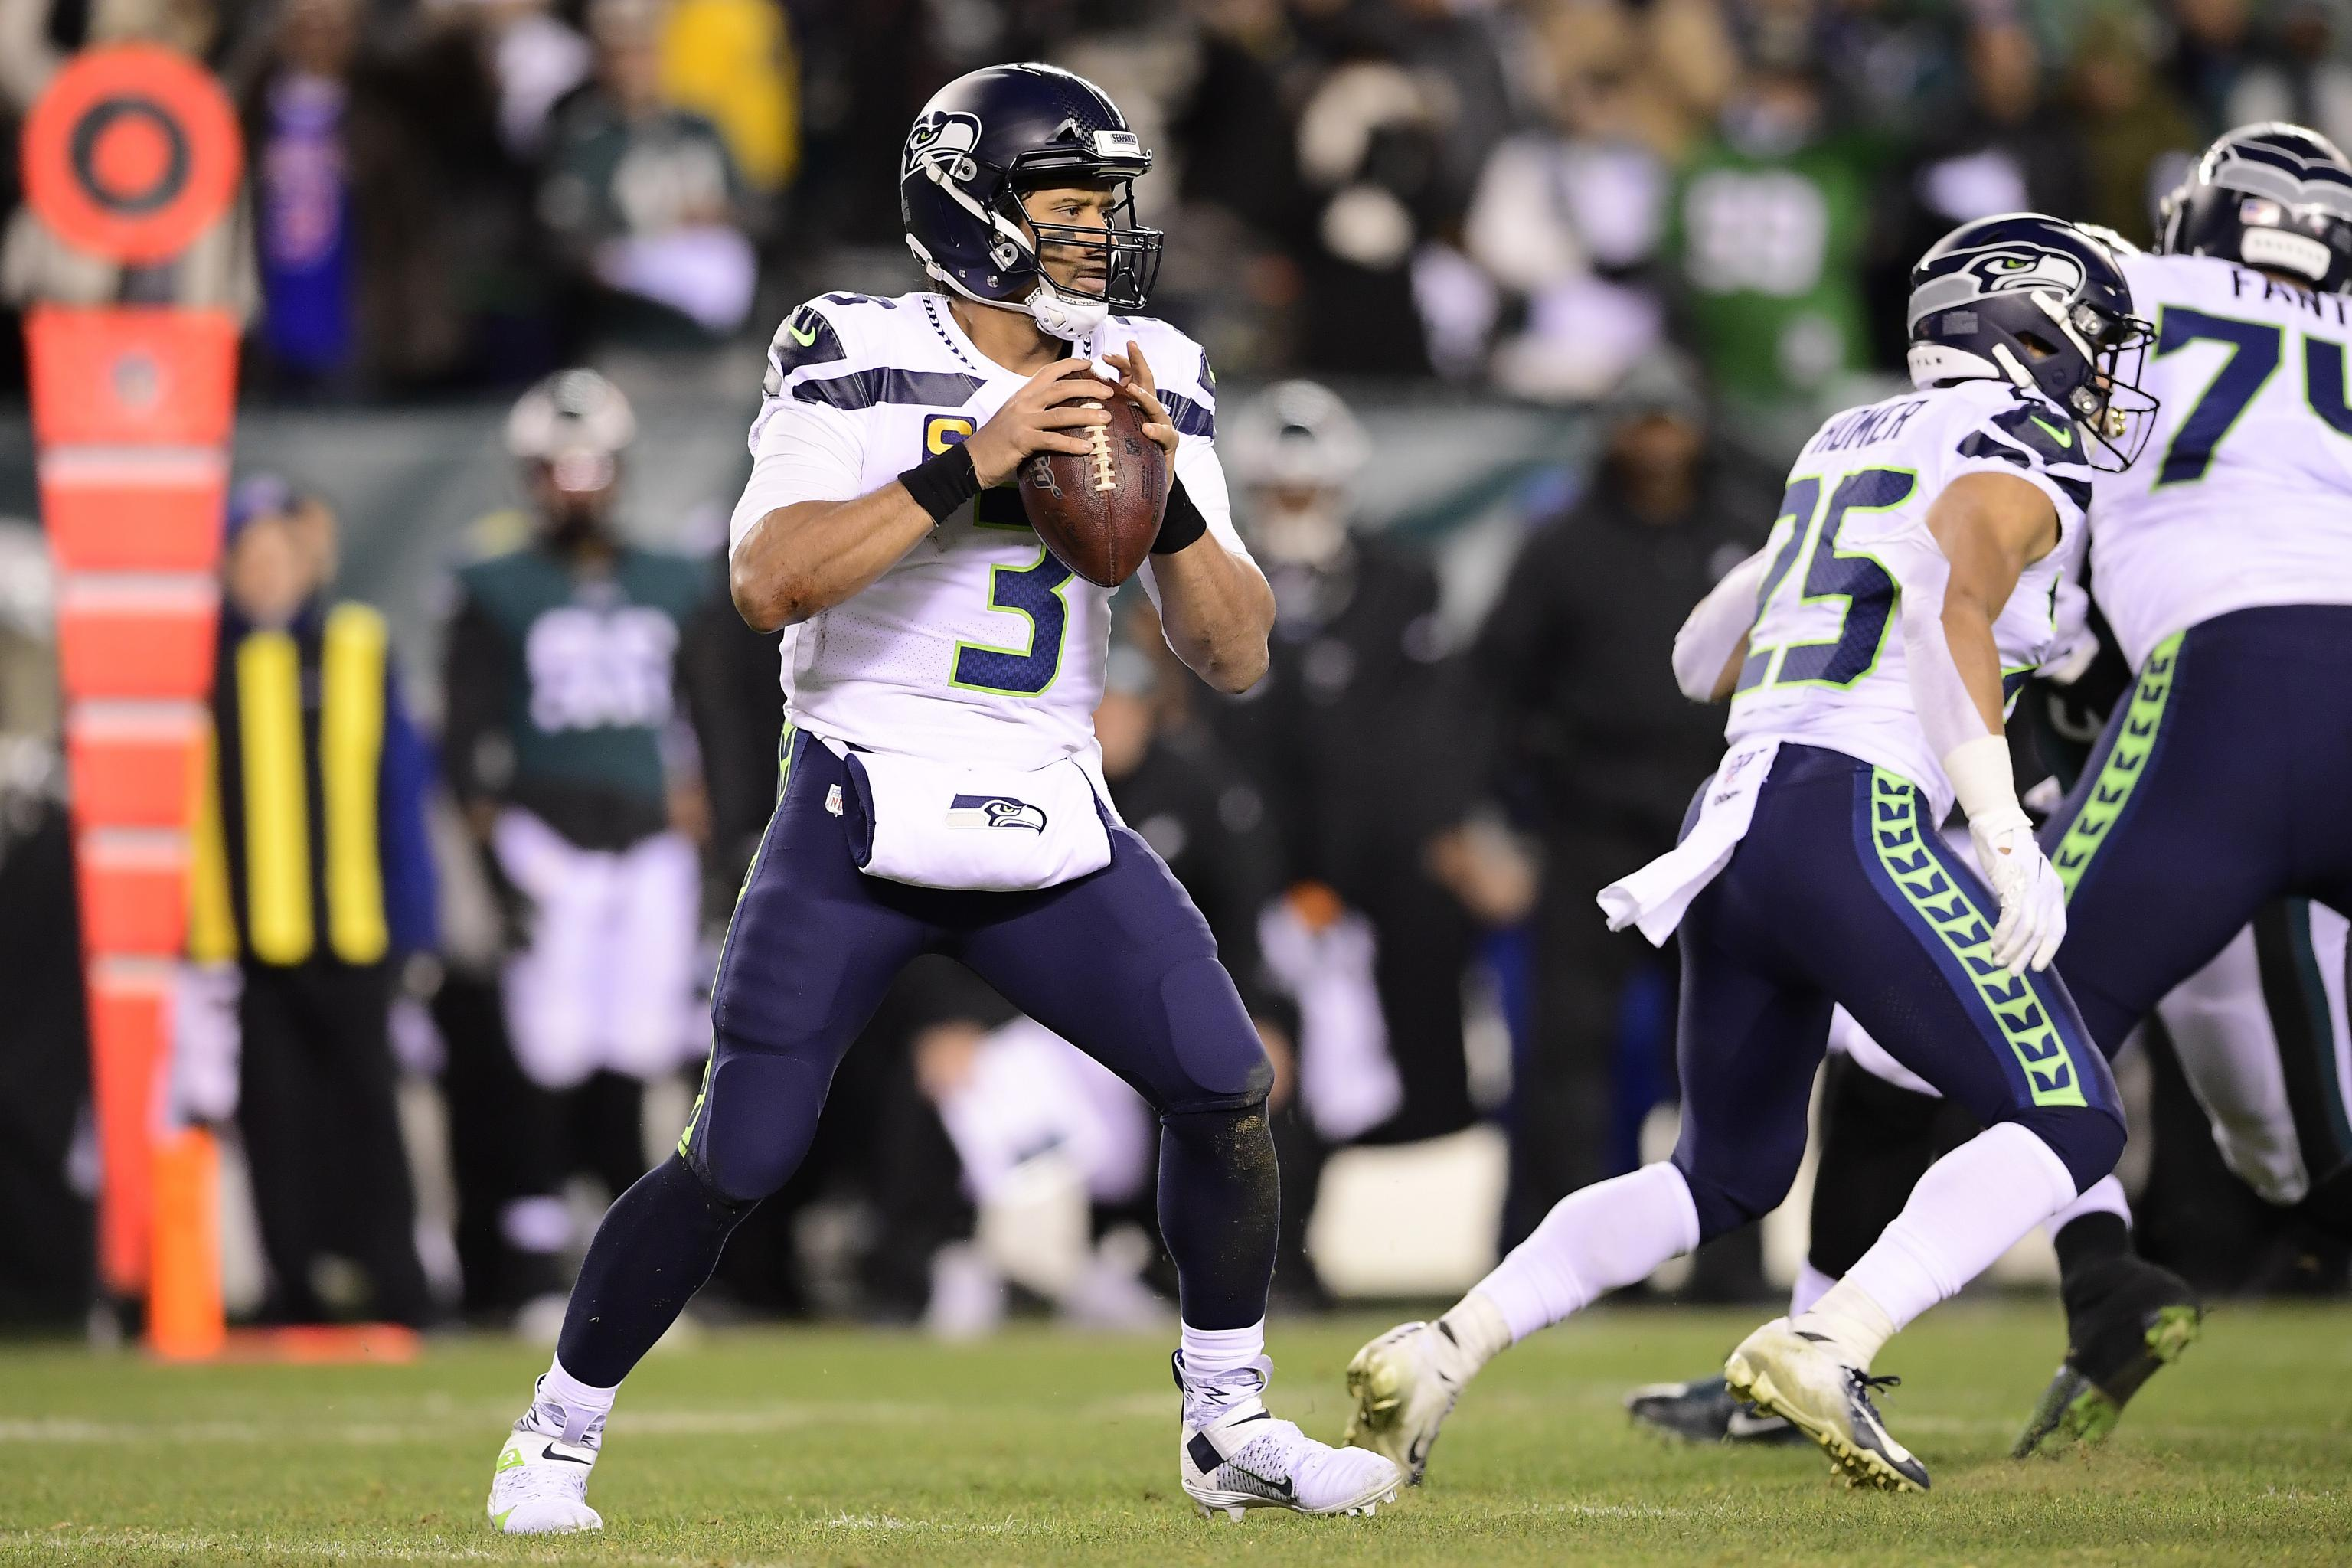 Seahawks Vs Packers Tv Schedule Odds Ticket Info Game Time And More Bleacher Report Latest News Videos And Highlights